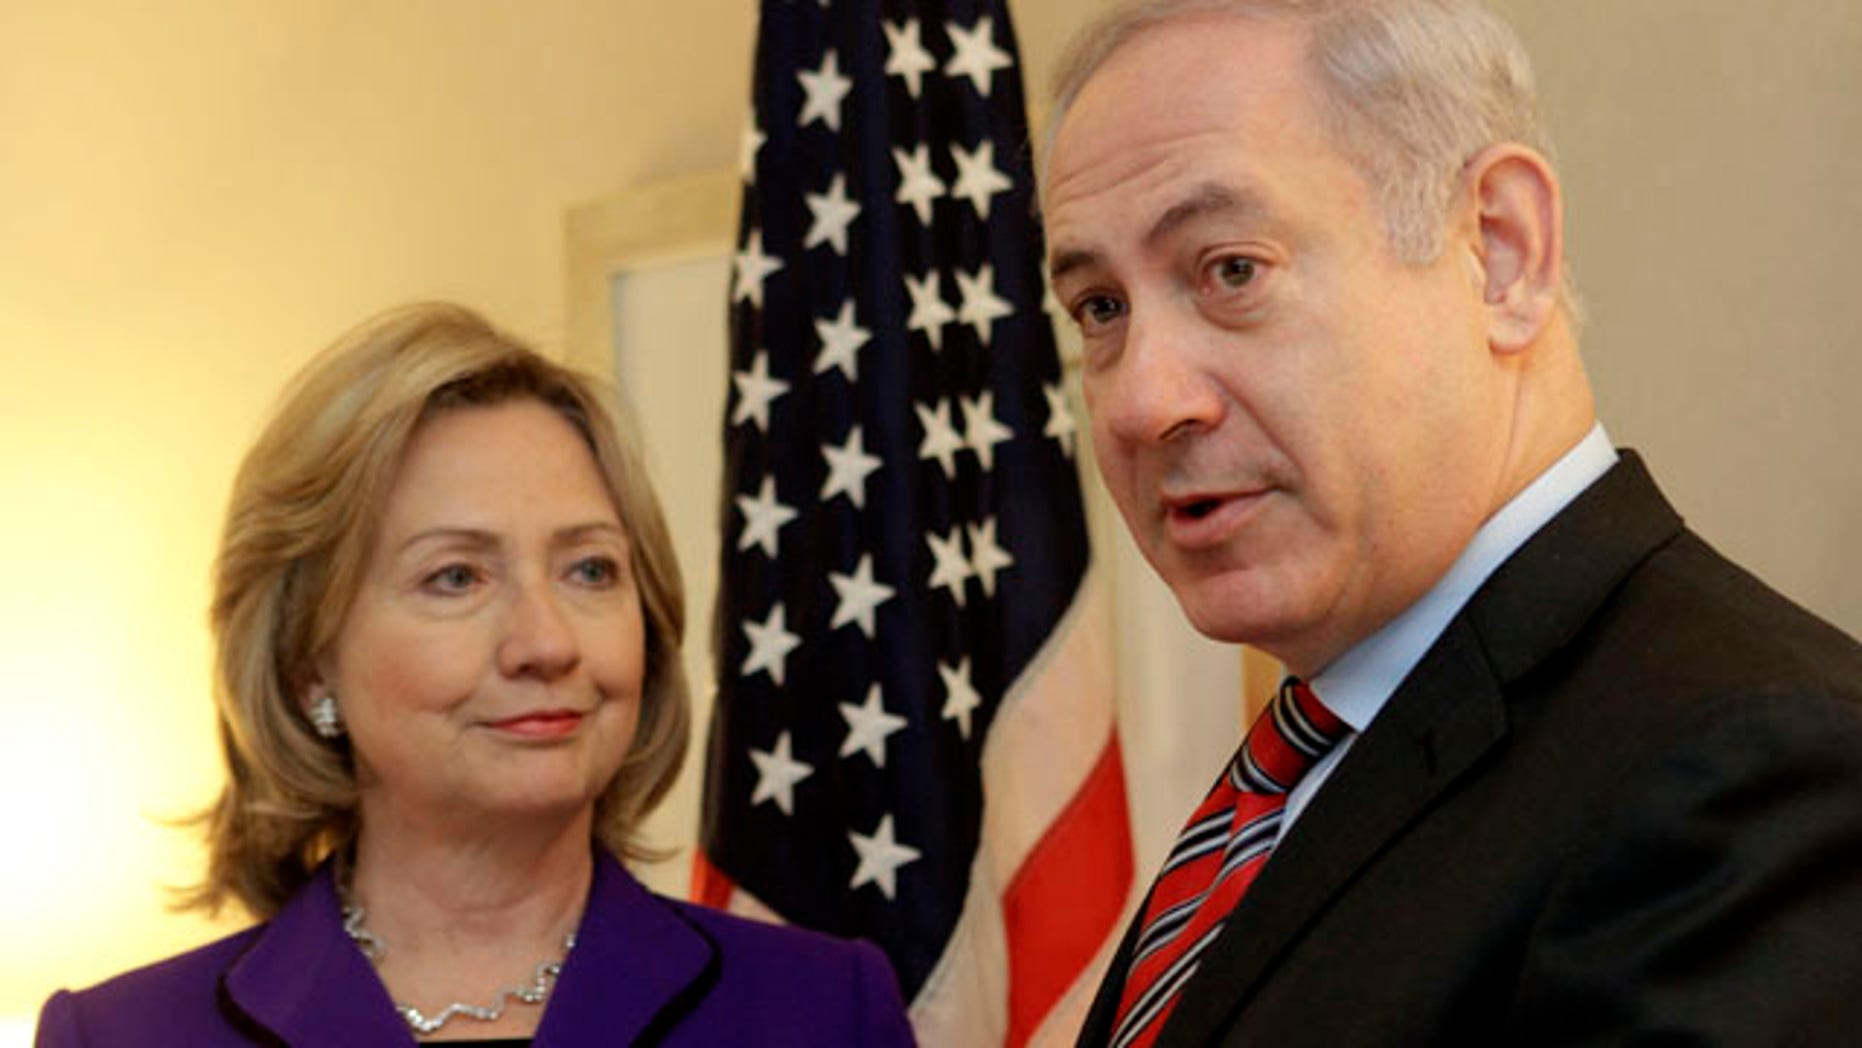 Nov. 11: U.S. Secretary of State Hillary Rodham Clinton, left, listens as Israeli Prime Minister Benjamin Netanyahu speaks to reporters during a meeting in New York.